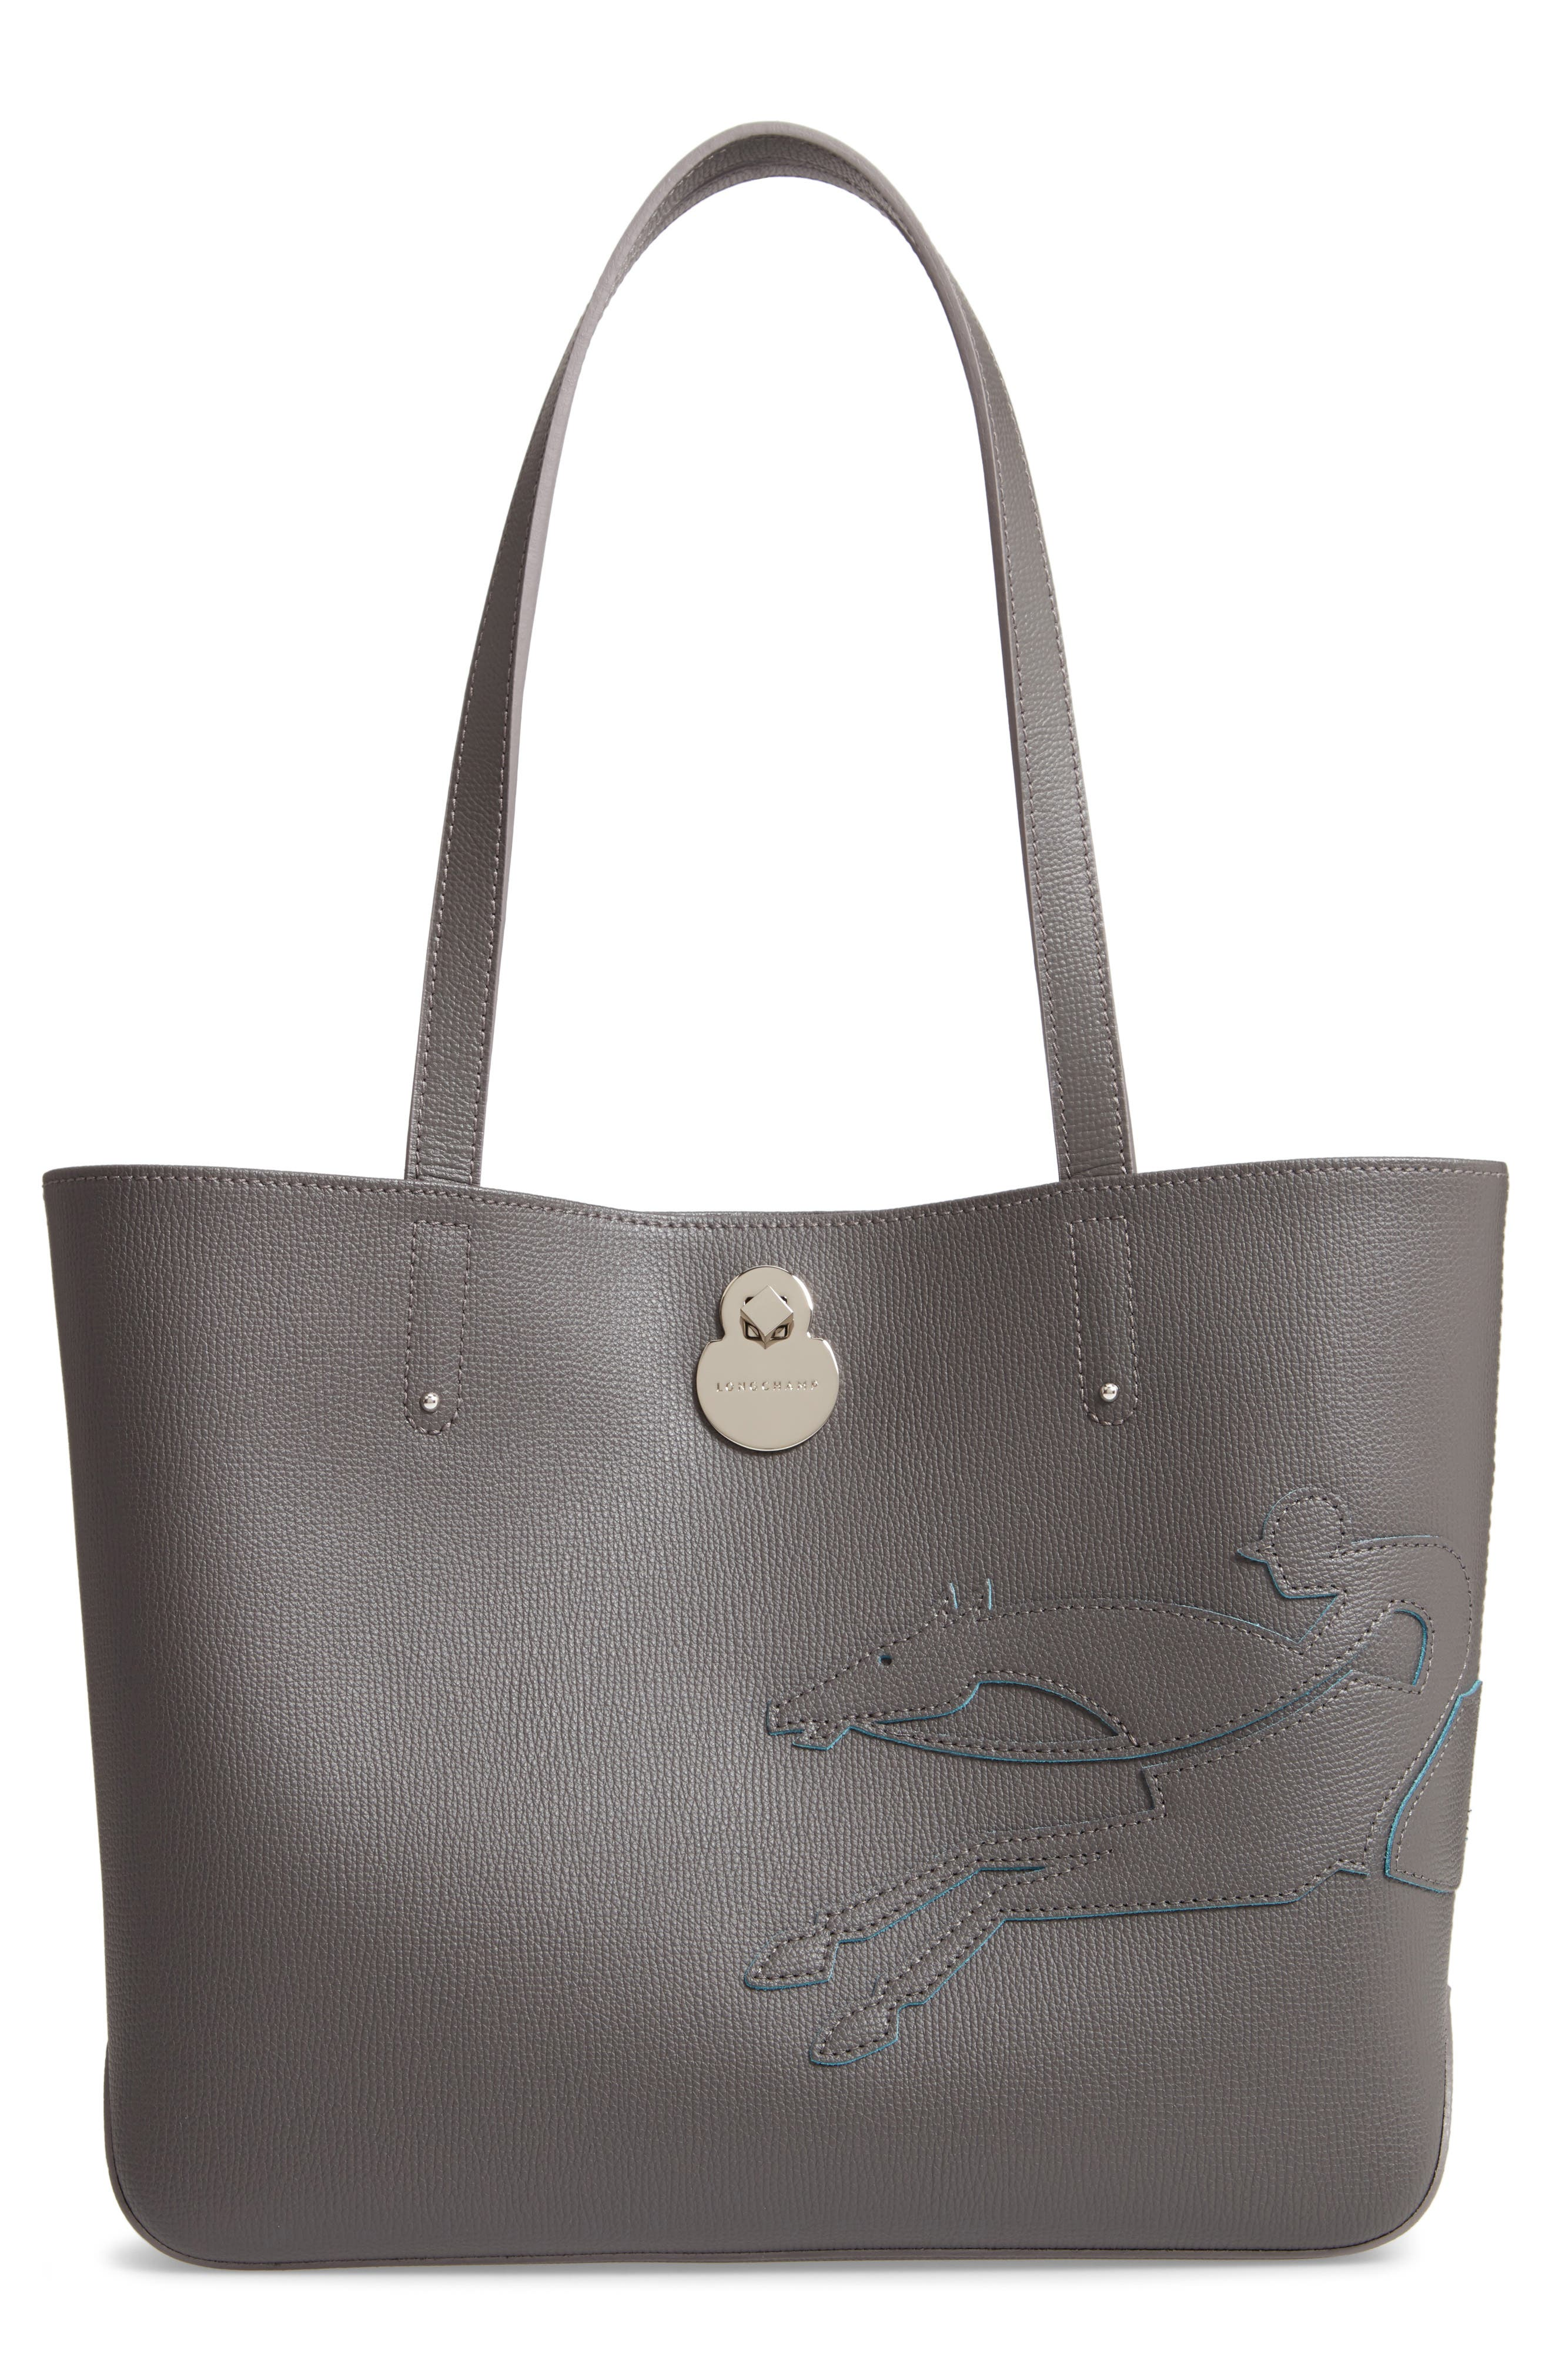 SMALL SHOP-IT LEATHER TOTE - GREY